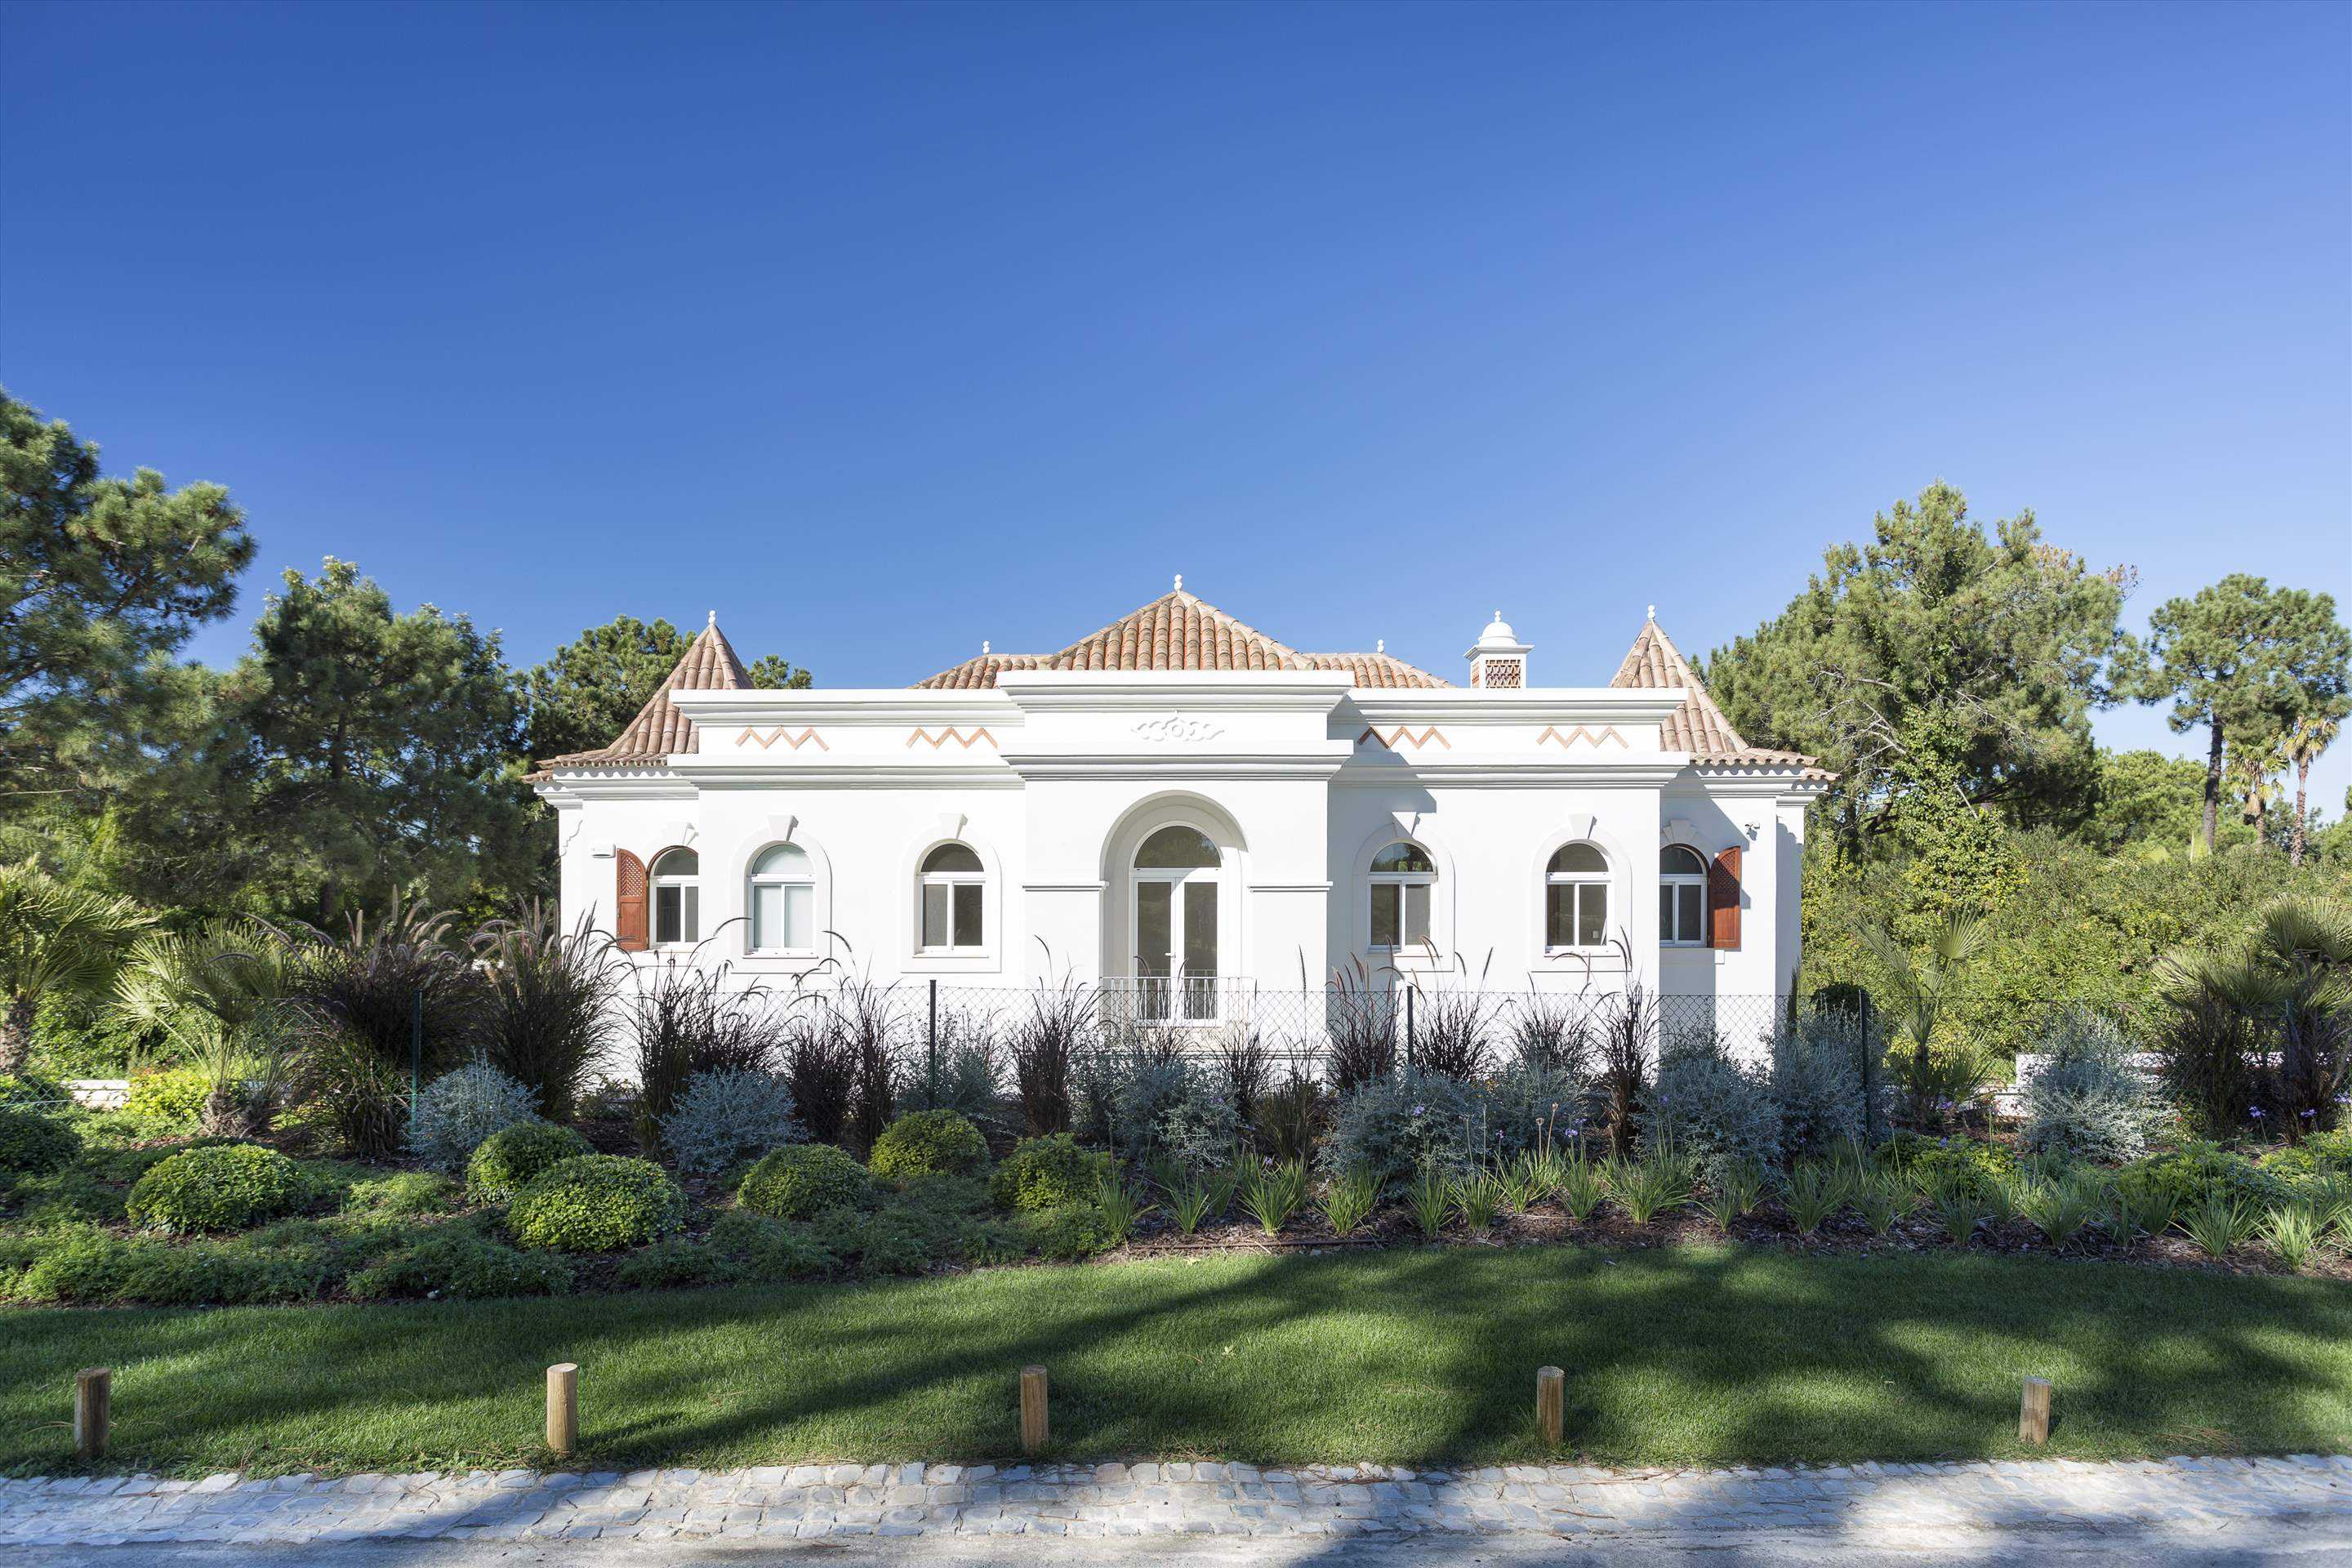 Villa Lantana 2, Main house & Annexe, 6 bedrooms, 6 bedroom villa in Quinta do Lago, Algarve Photo #18